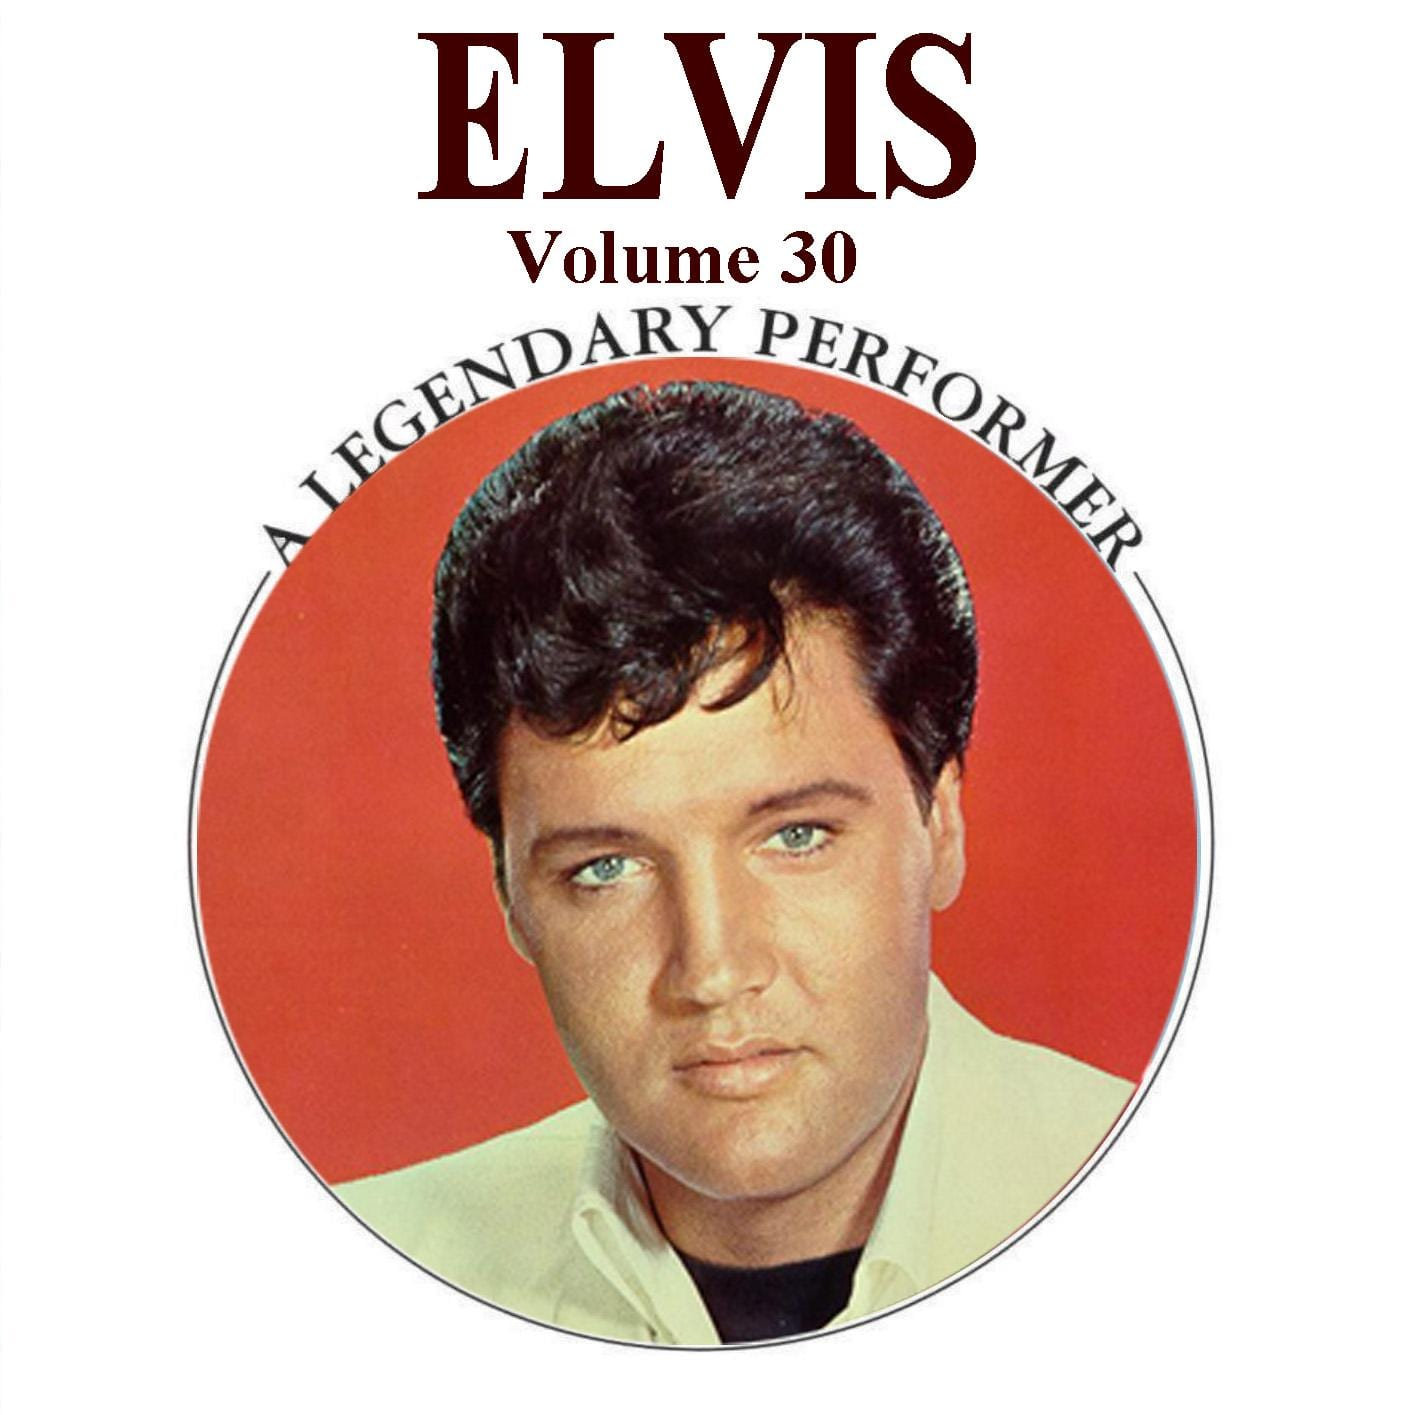 Elvis Presley - A Legendary Performer, Vol. 30 (2014) CD 8